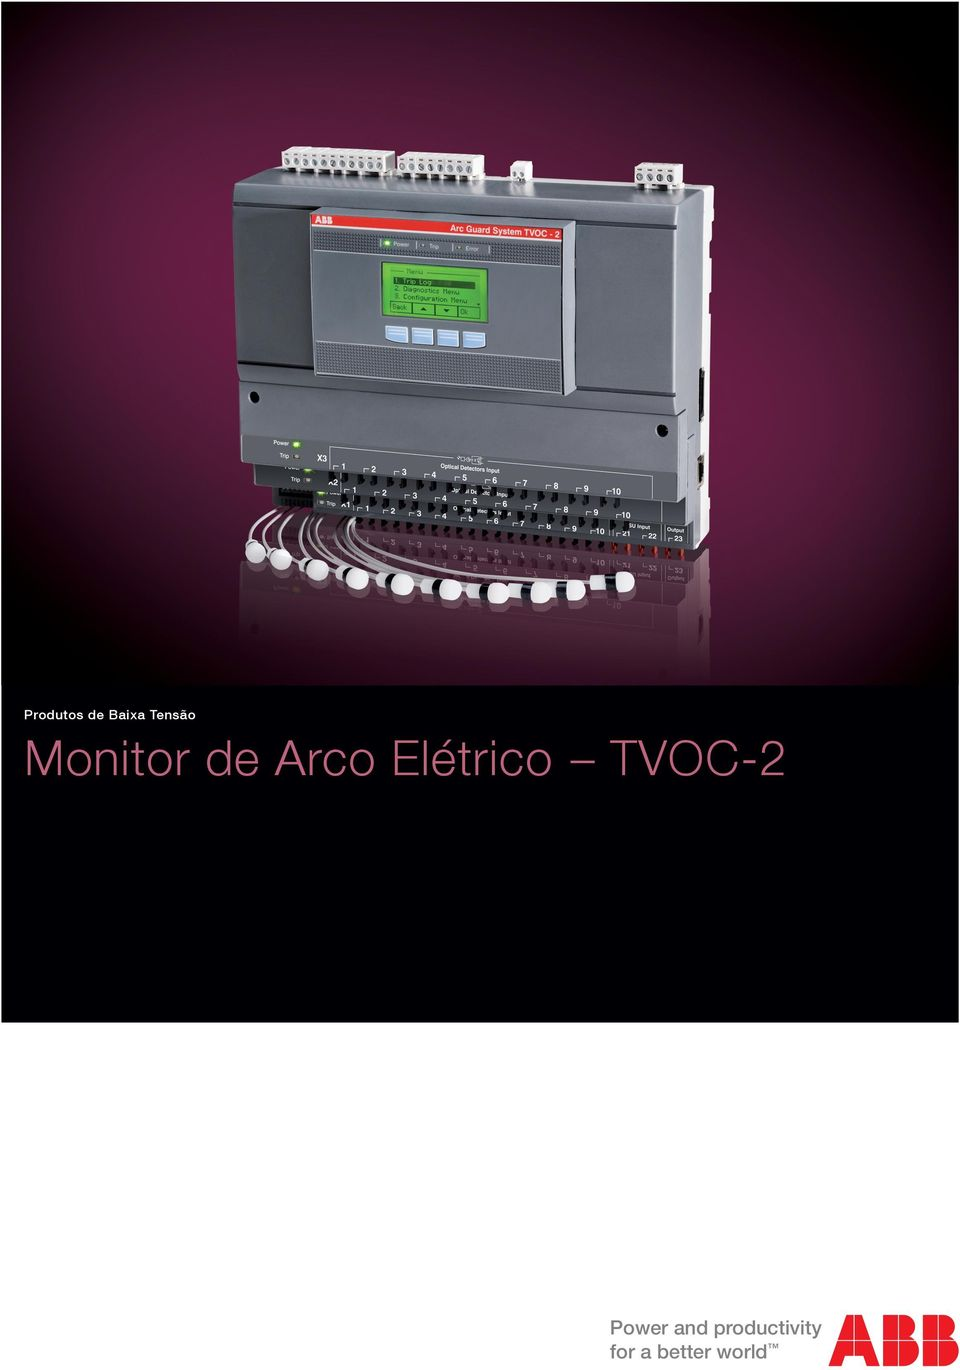 TVOC-2 Power and